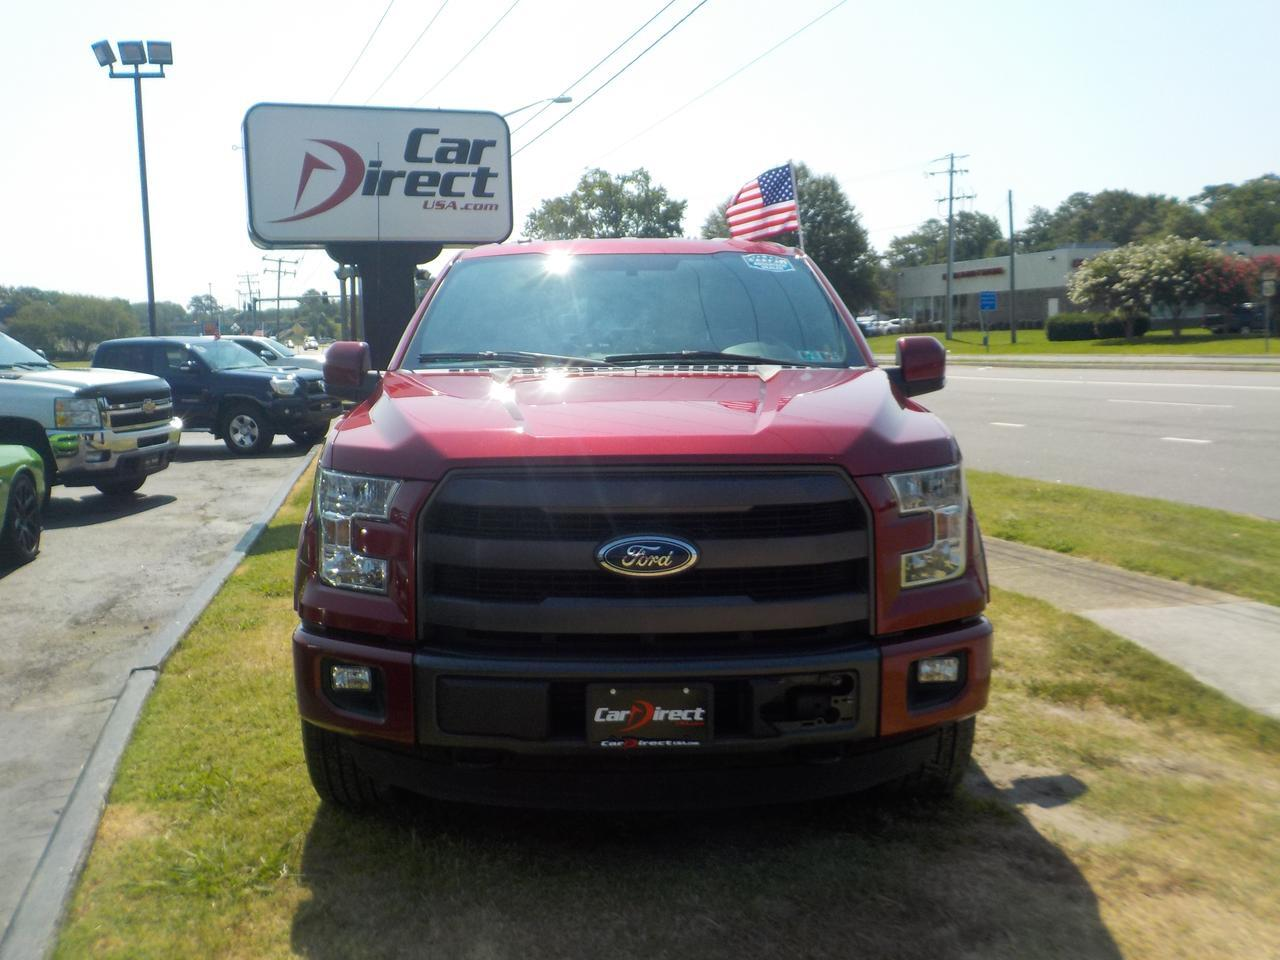 2015 FORD F-150 LARIAT SUPERCREW 4X4, HEATED & COOLED SEATING, NAVIGATION, TOW, RUNNING BOARDS, POWER FOLDING MIRROR Virginia Beach VA